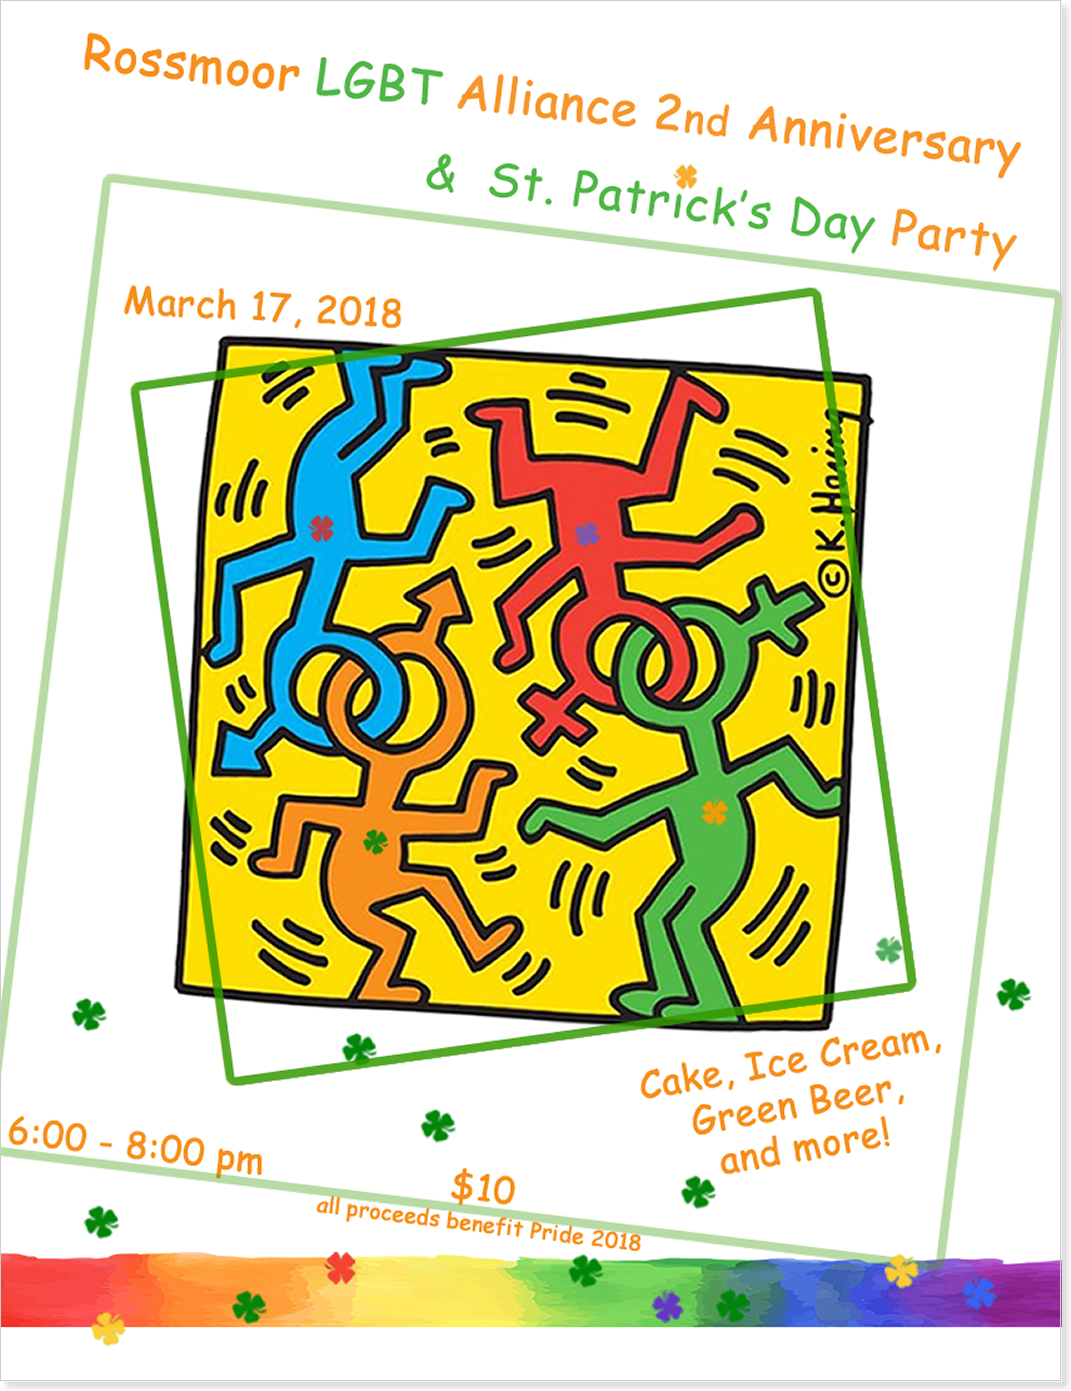 Alliance Nniversary St Patrickk's Day Party 2018